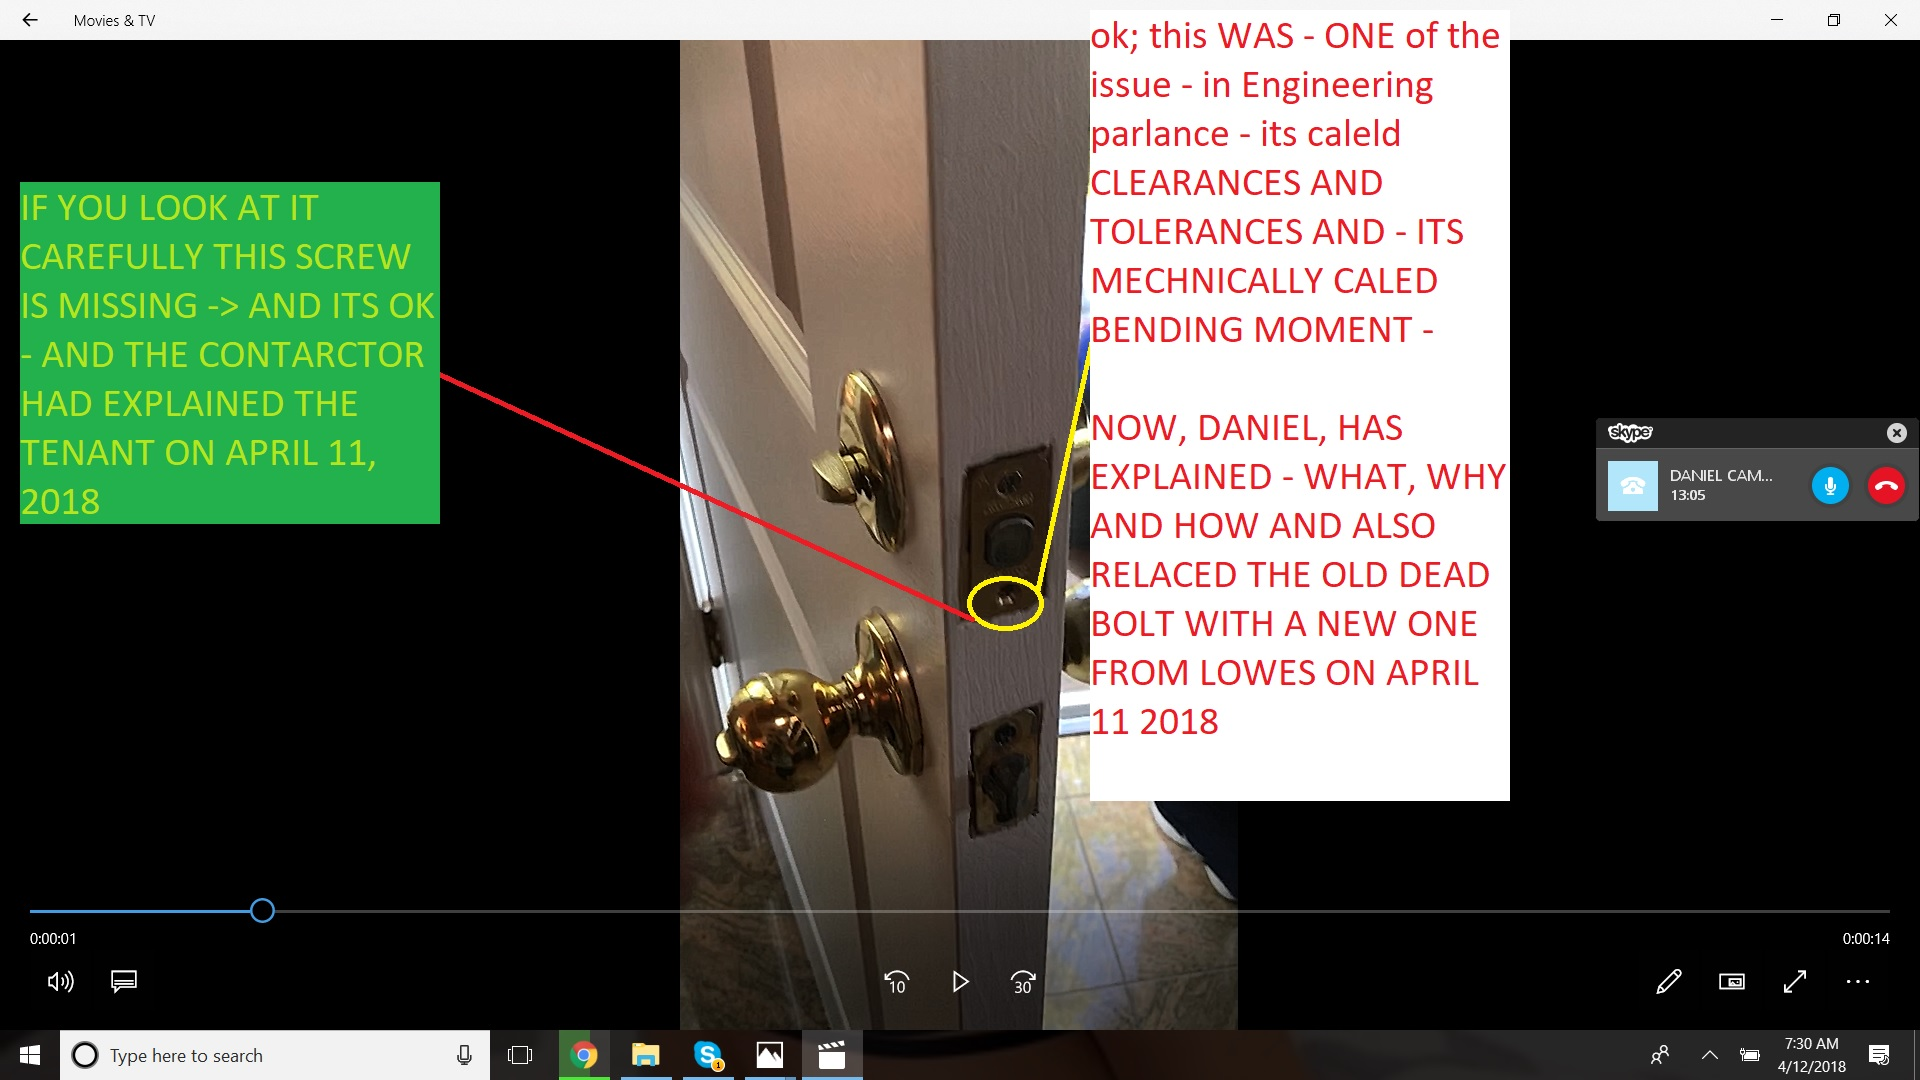 FRONT DOOR DEAD BOLT - CONSTRUCTION AND ENGINEERING - APRIL 11 2018 SUCCESFULLY FIXED - SEE EXPLATAIONS